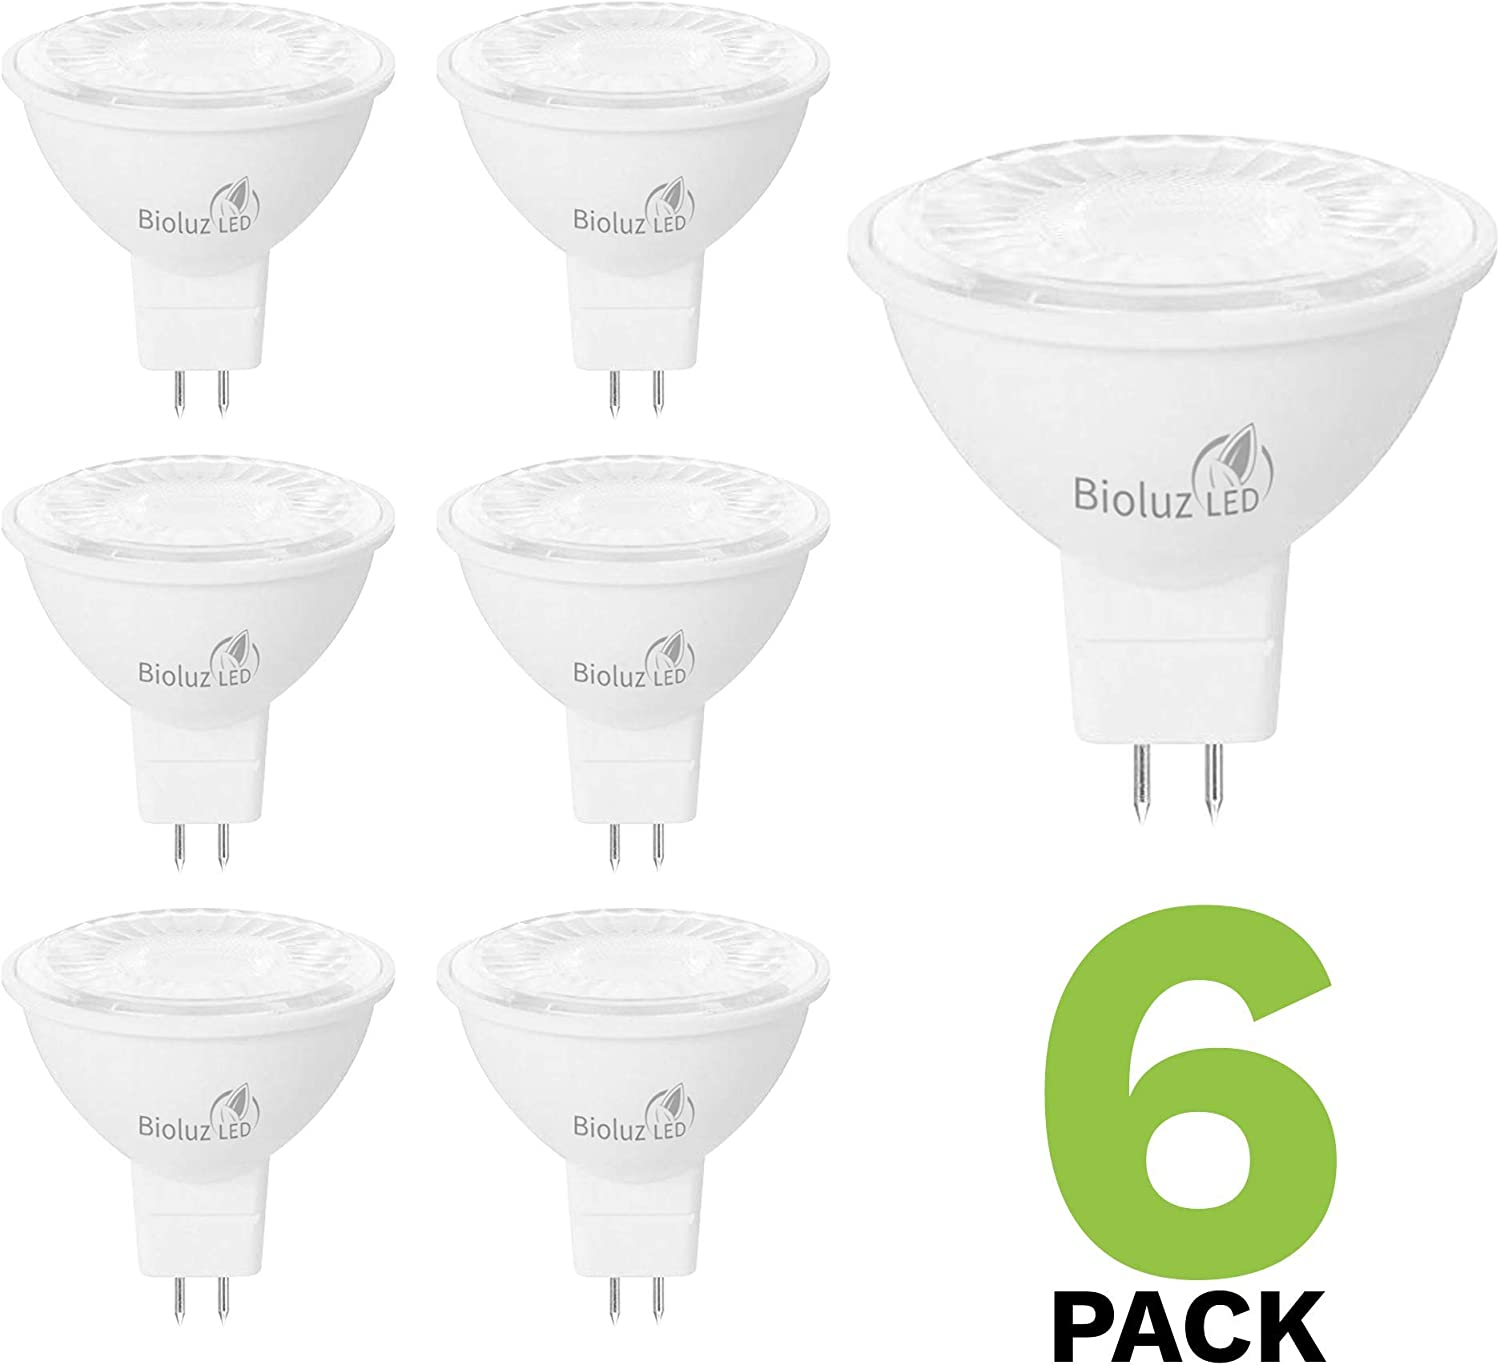 6 Pack Bioluz LED MR16 LED Bulb 50W Halogen Replacement Non-Dimmable 7w 3000K 12v AC/DC UL Listed Pack of 6